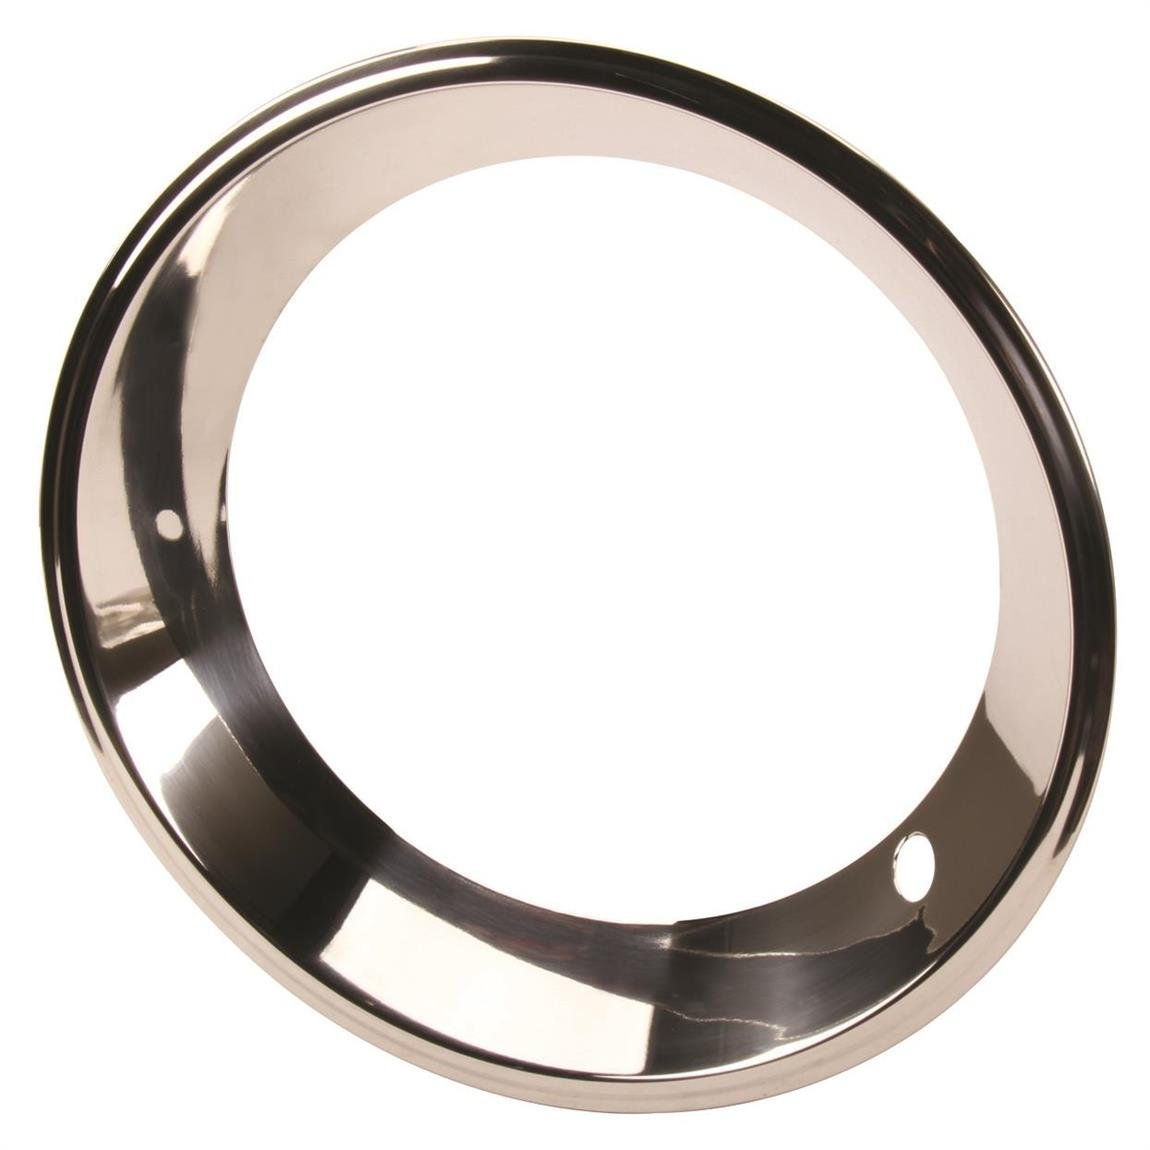 15 In GM Rally Wheel Stainless Steel Beauty Ring 2.5 In Wide